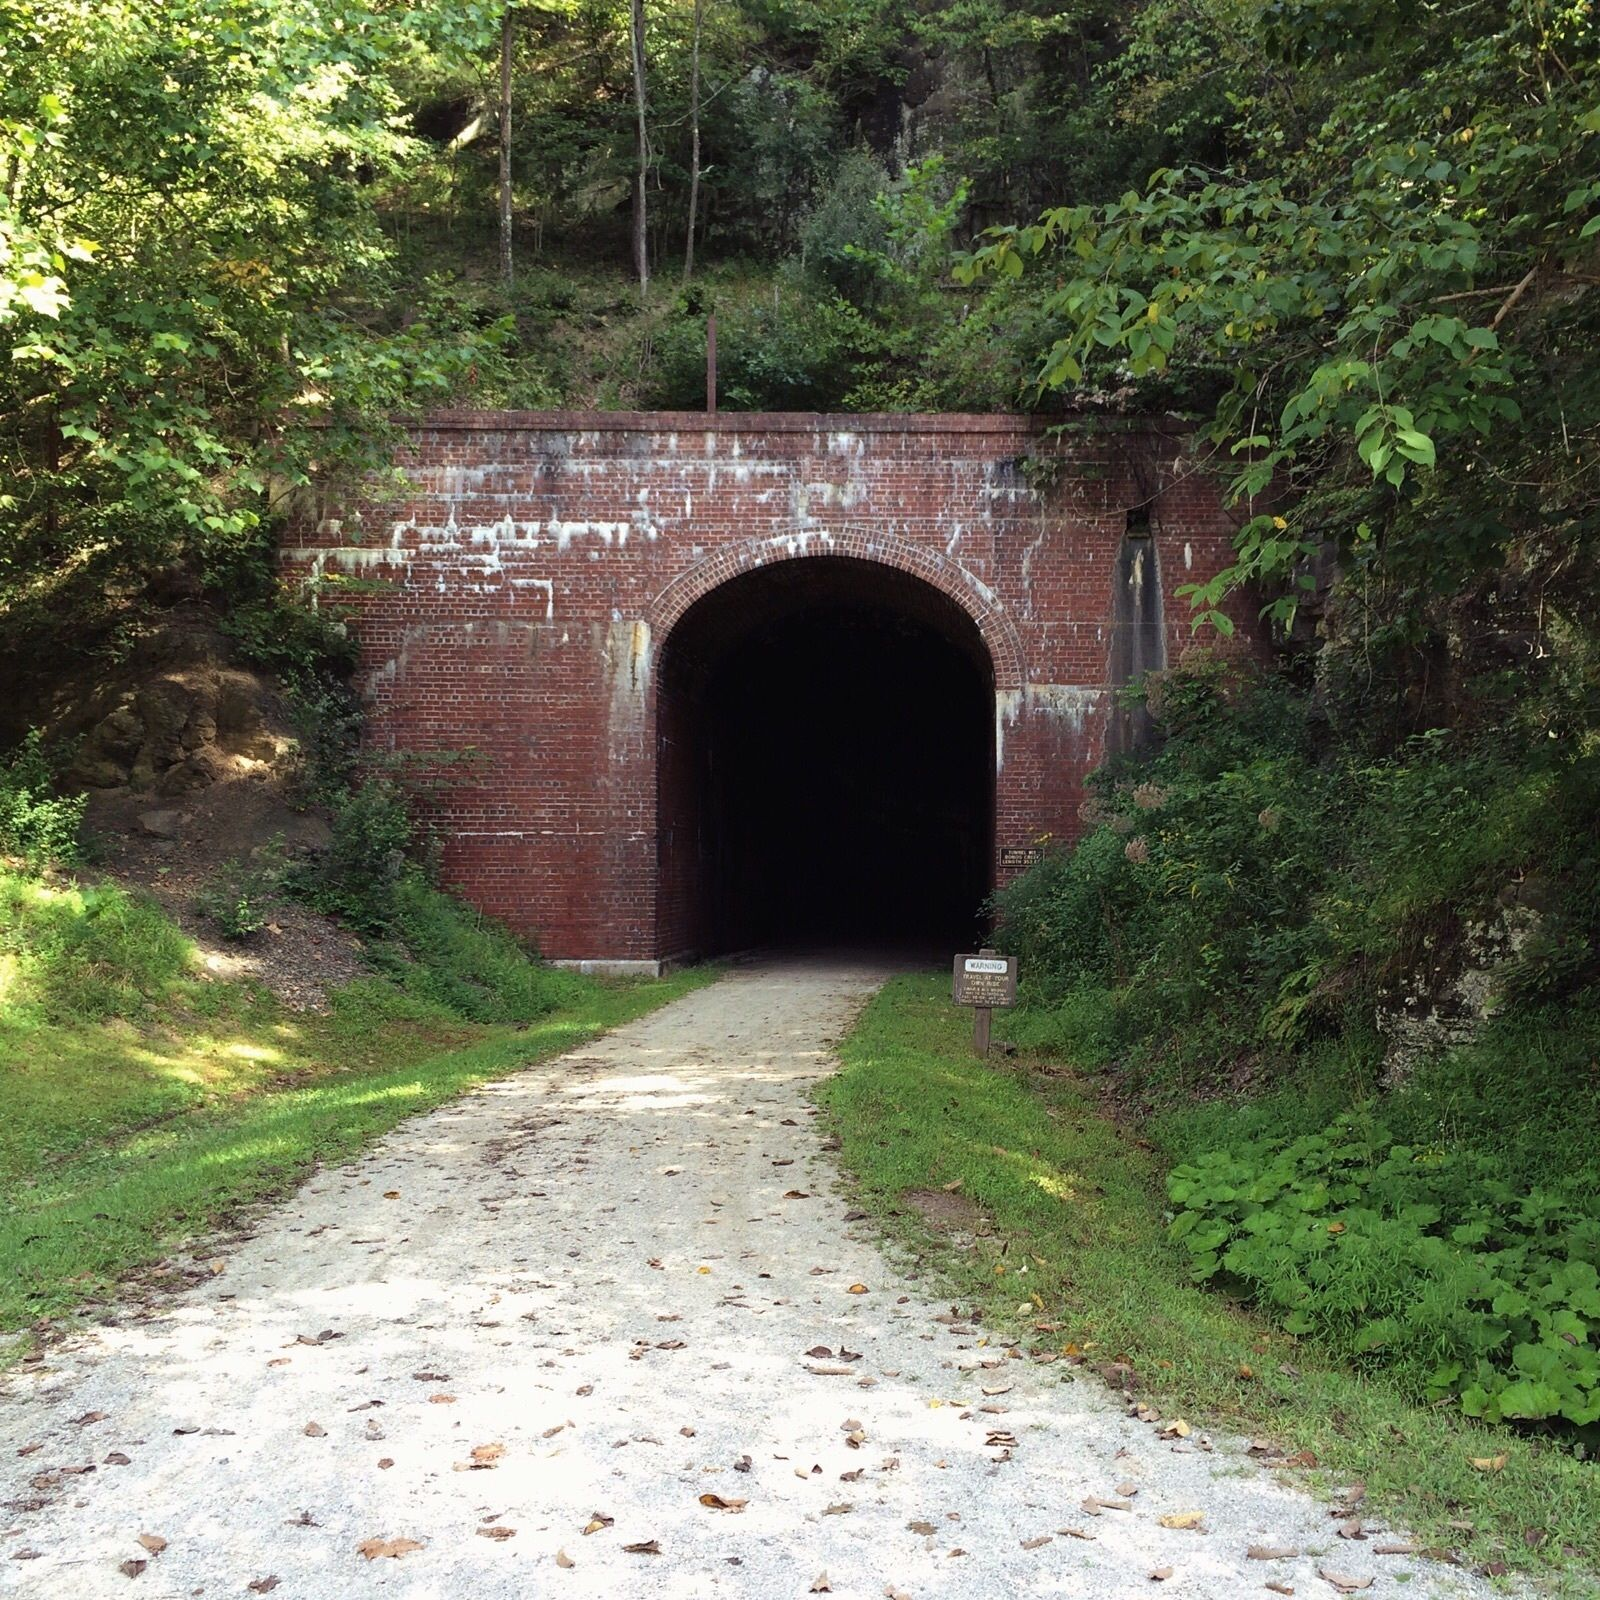 North Bend Rail Trail In West Virginia Takes You Through